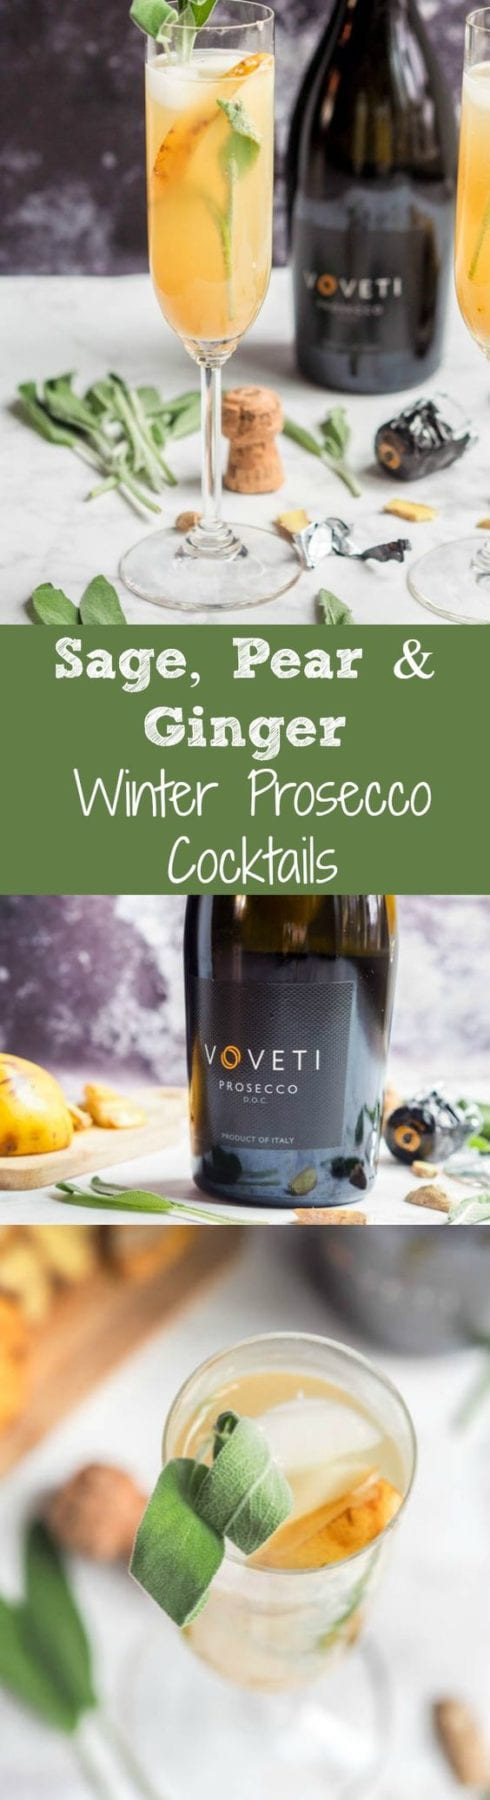 These winter prosecco cocktails are made with sage, pear and ginger for a super chic and fragrant yet easy to make winter themed adult beverage.